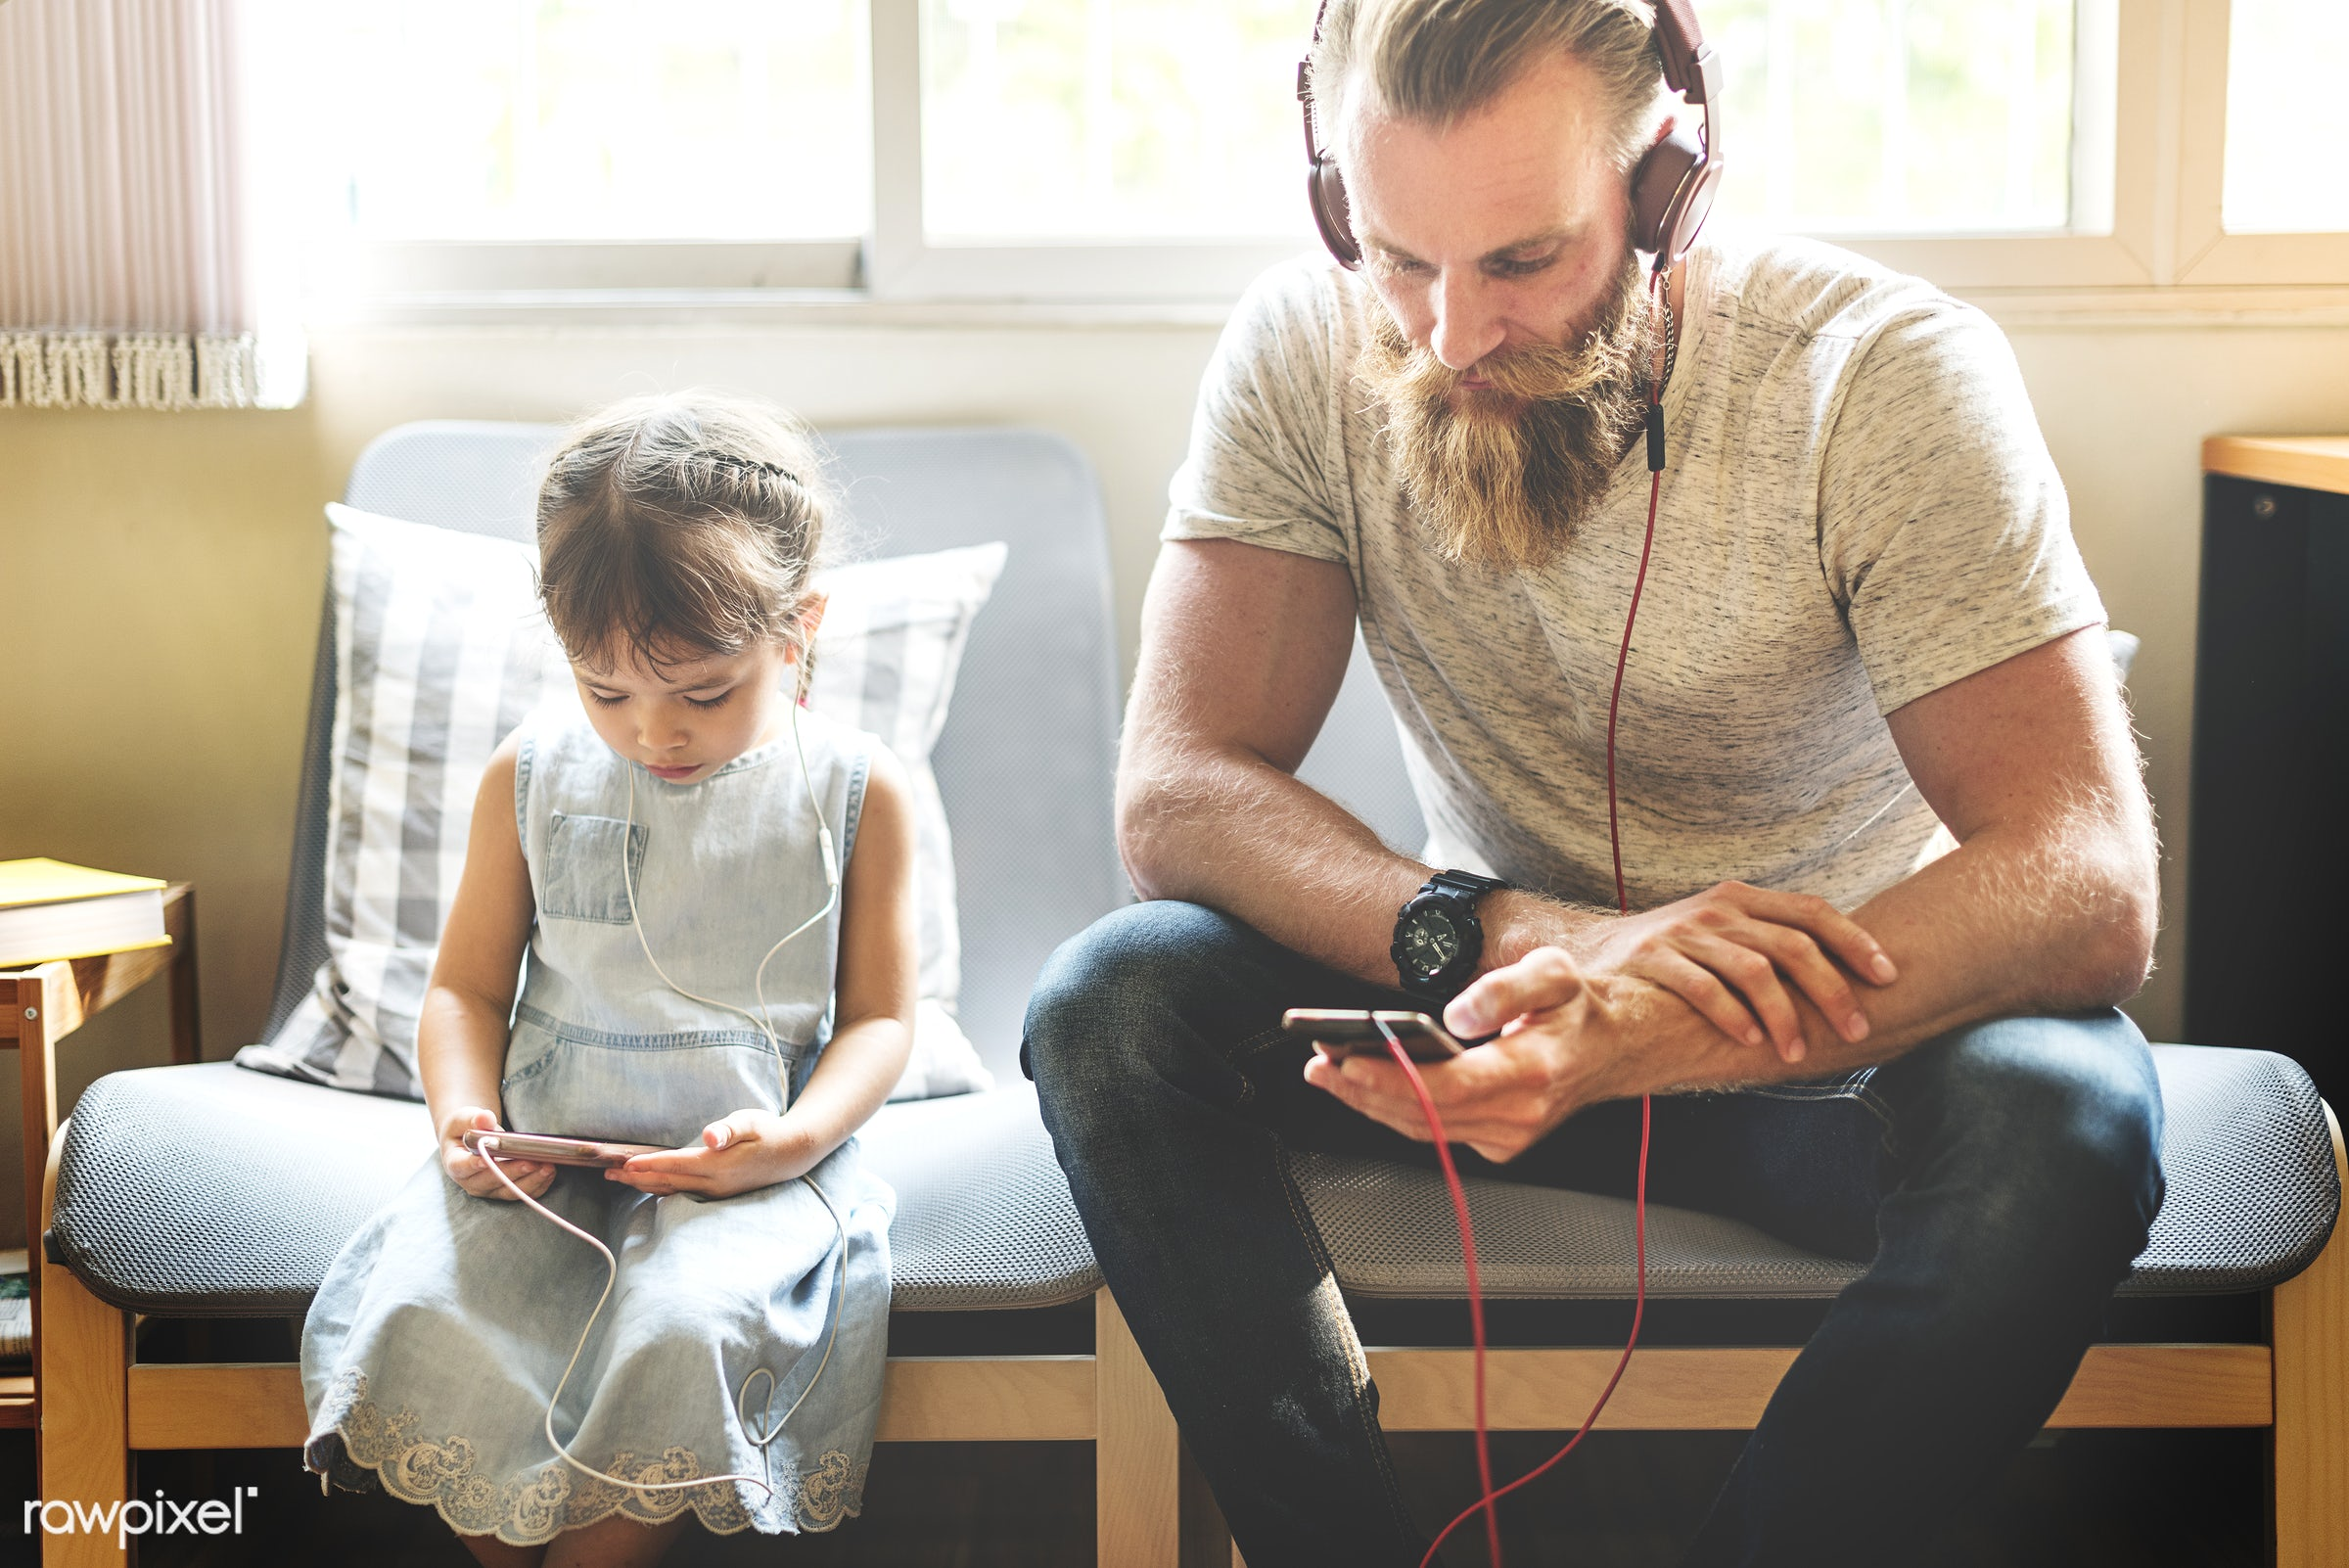 dad, music, adolescence, bonding, browsing, cheerful, child, childhood, communication, connection, cute, daughter, earphone...